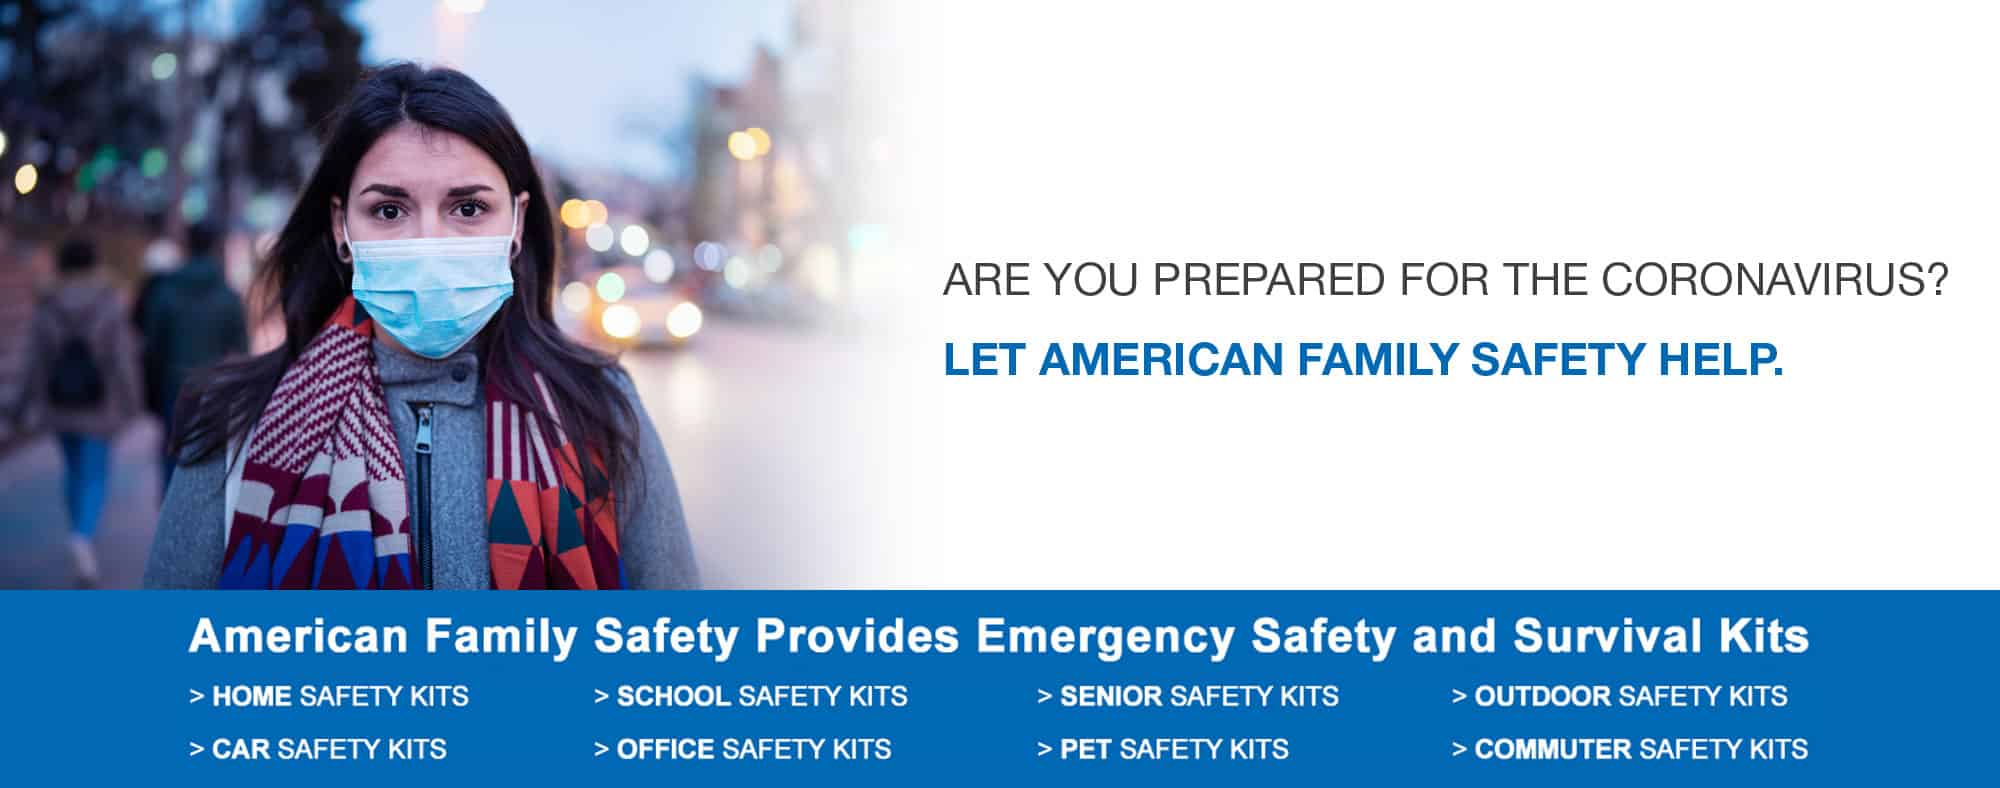 Ready for the Coronavirus? American Family Safety is the leading provider of EMERGENCY PREPAREDNESS KITS For Home, Office, School and Seniors